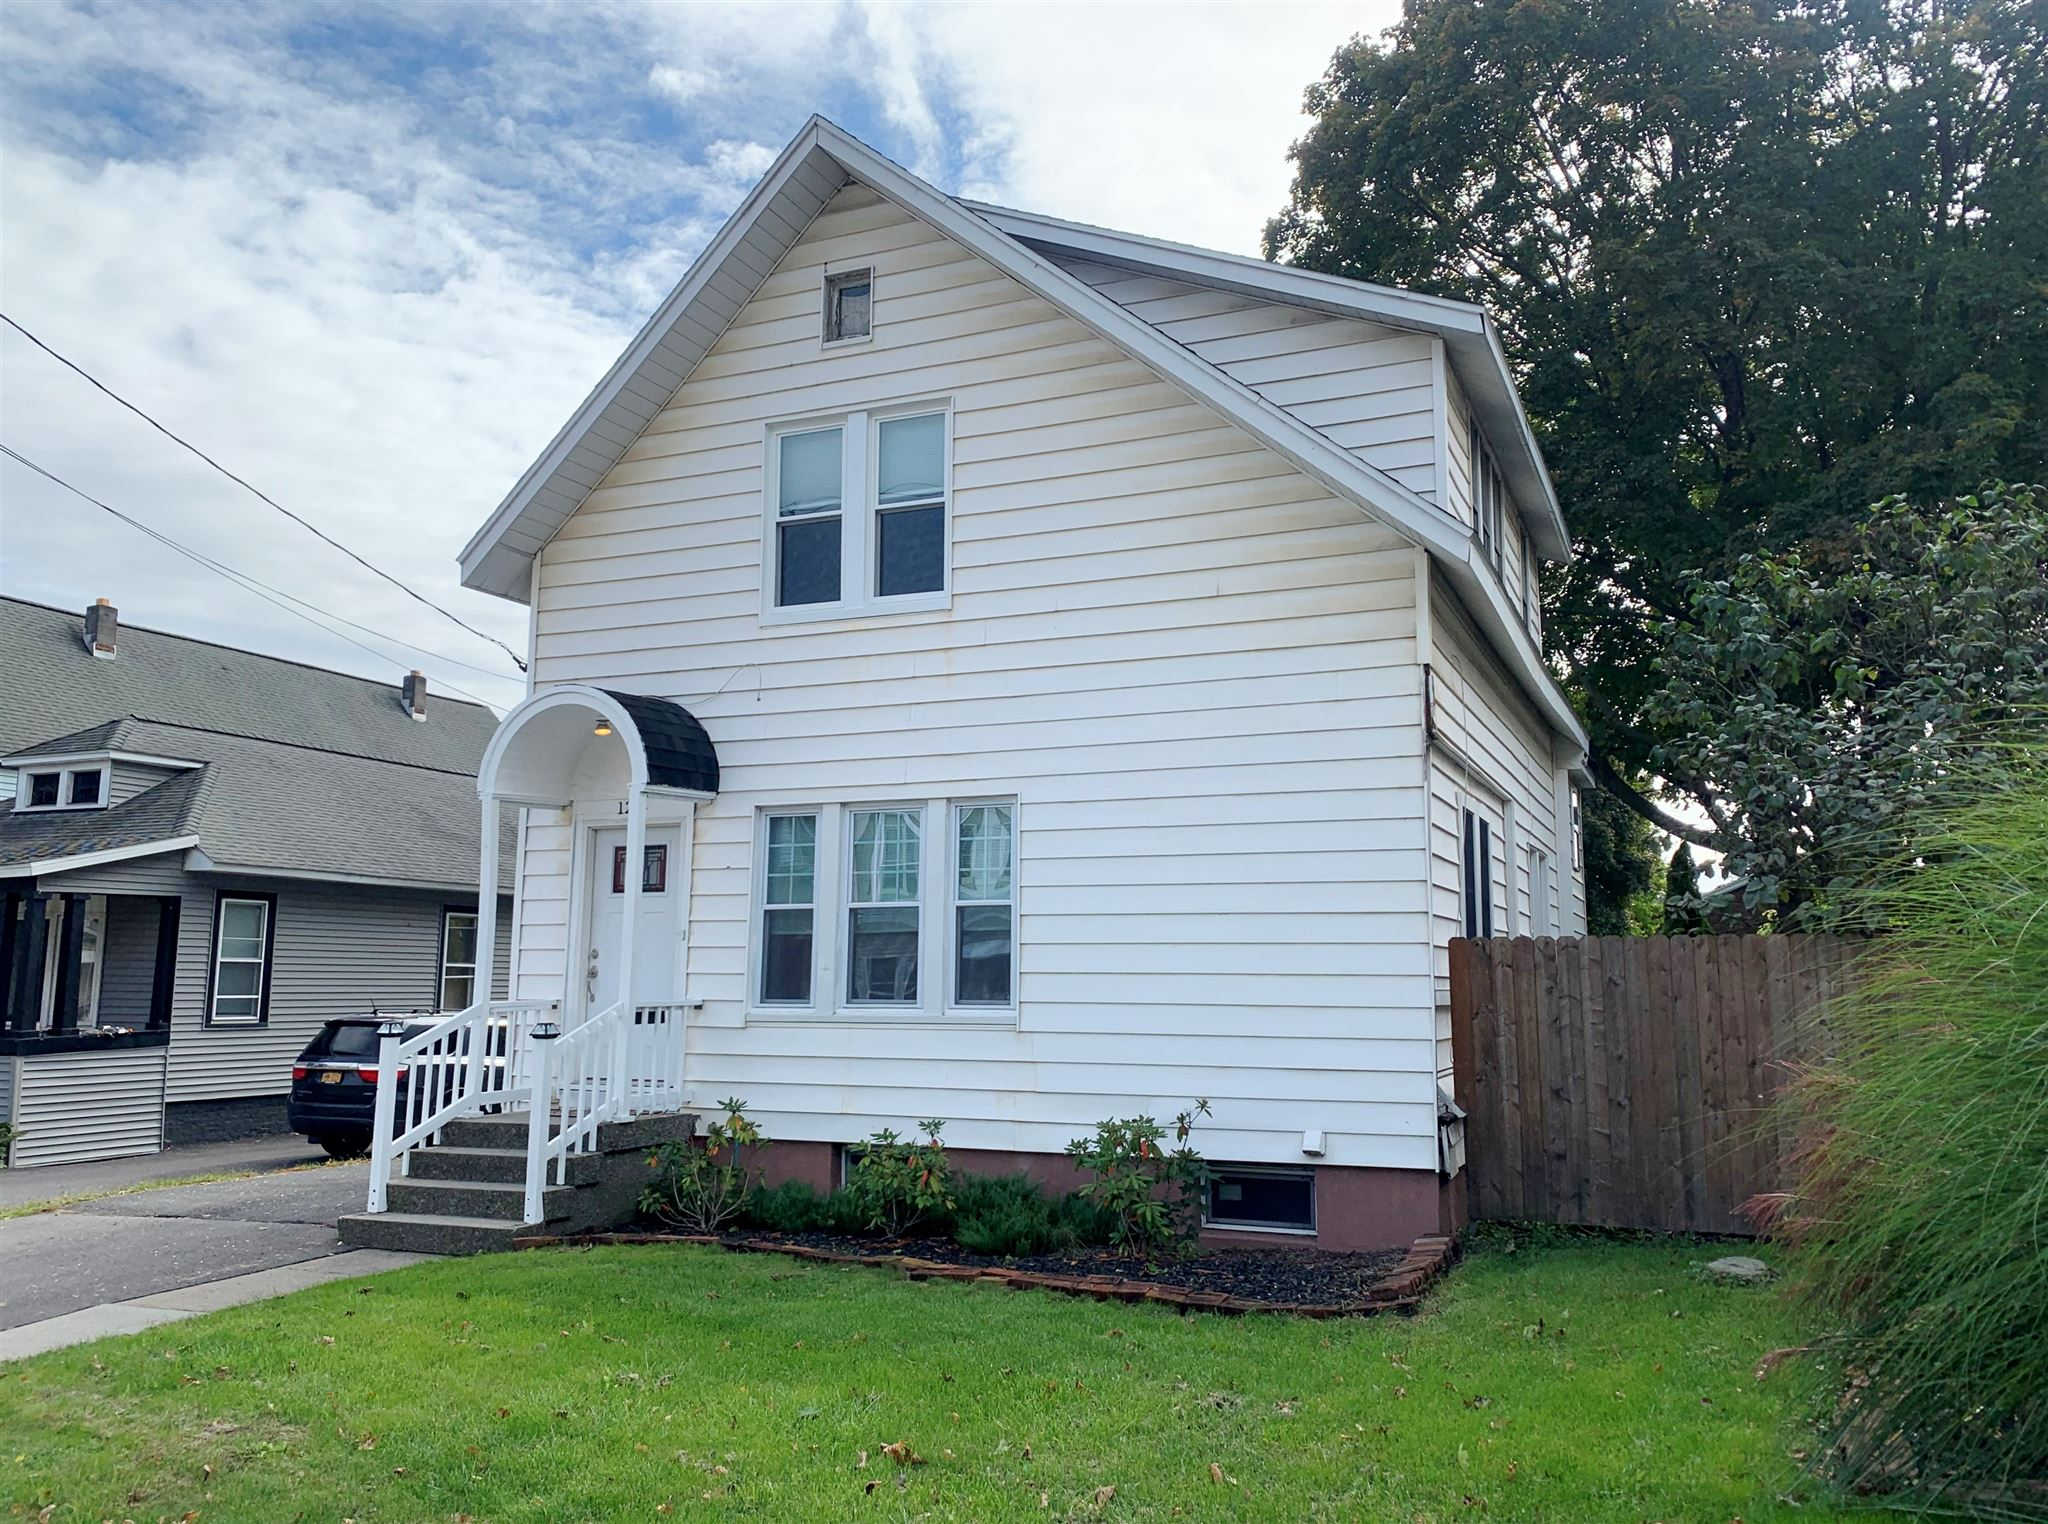 1214 19TH St, Watervliet, NY 12189 now has a new price of $129,900!